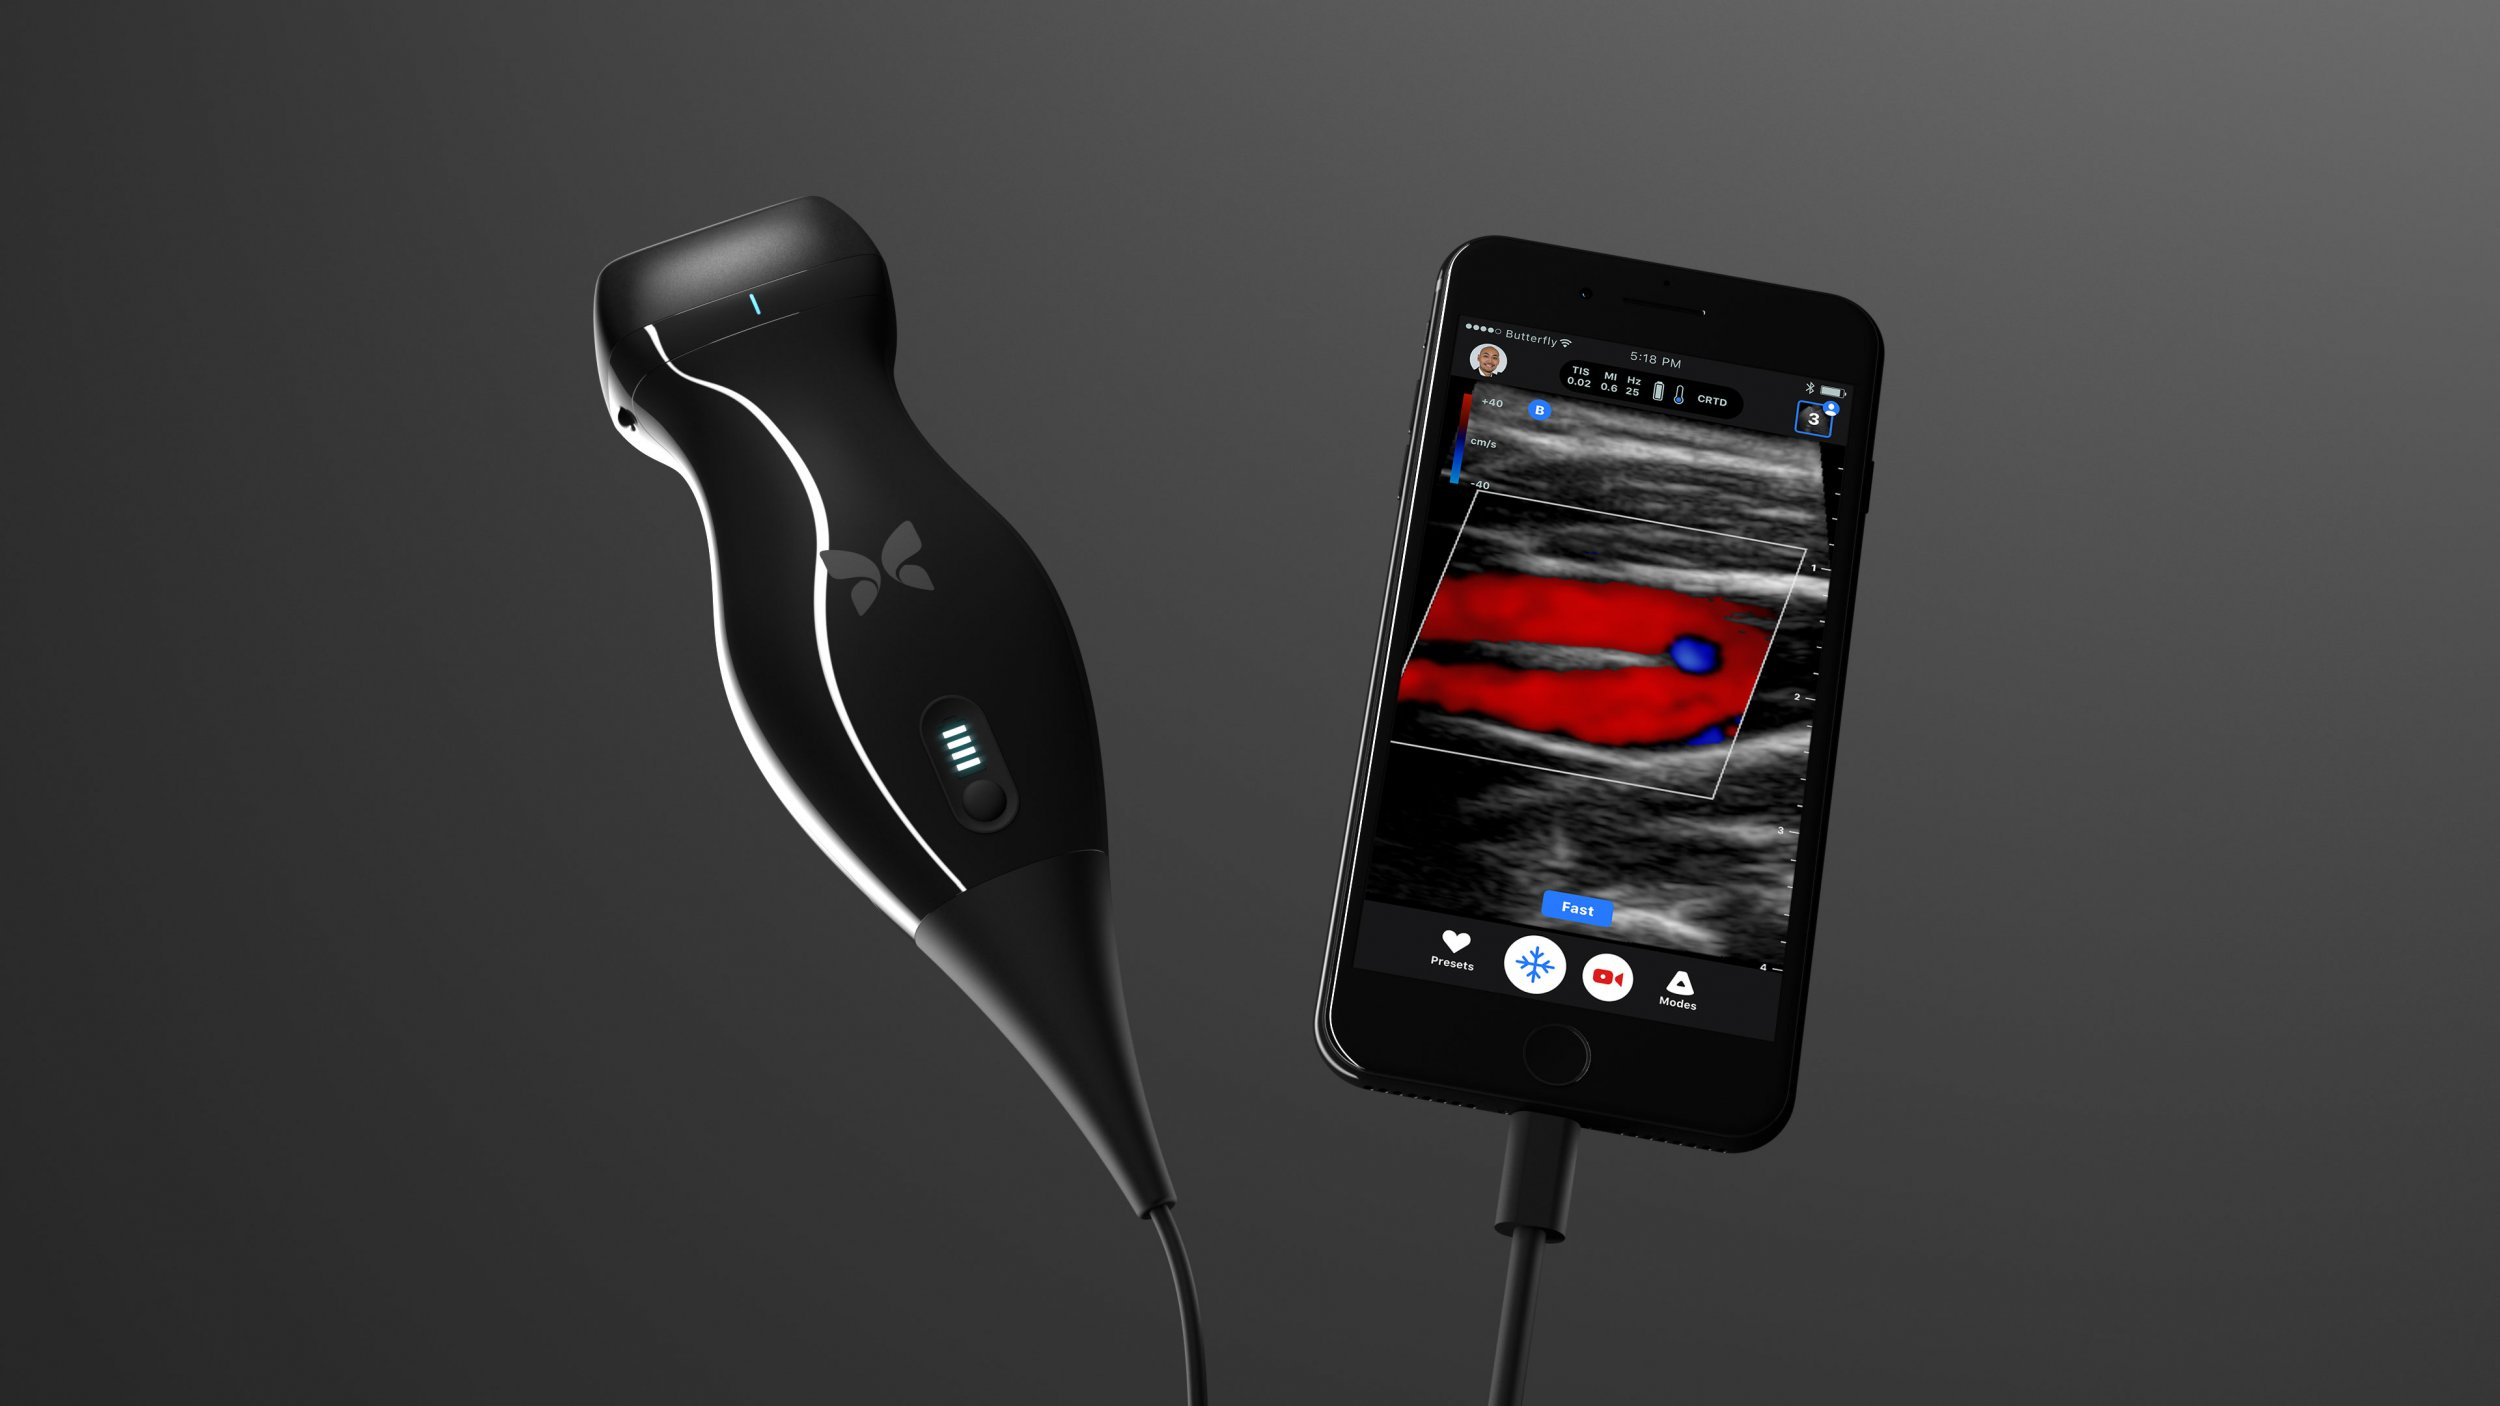 No This Iphone Based Ultrasound Doesn T Mean You Should